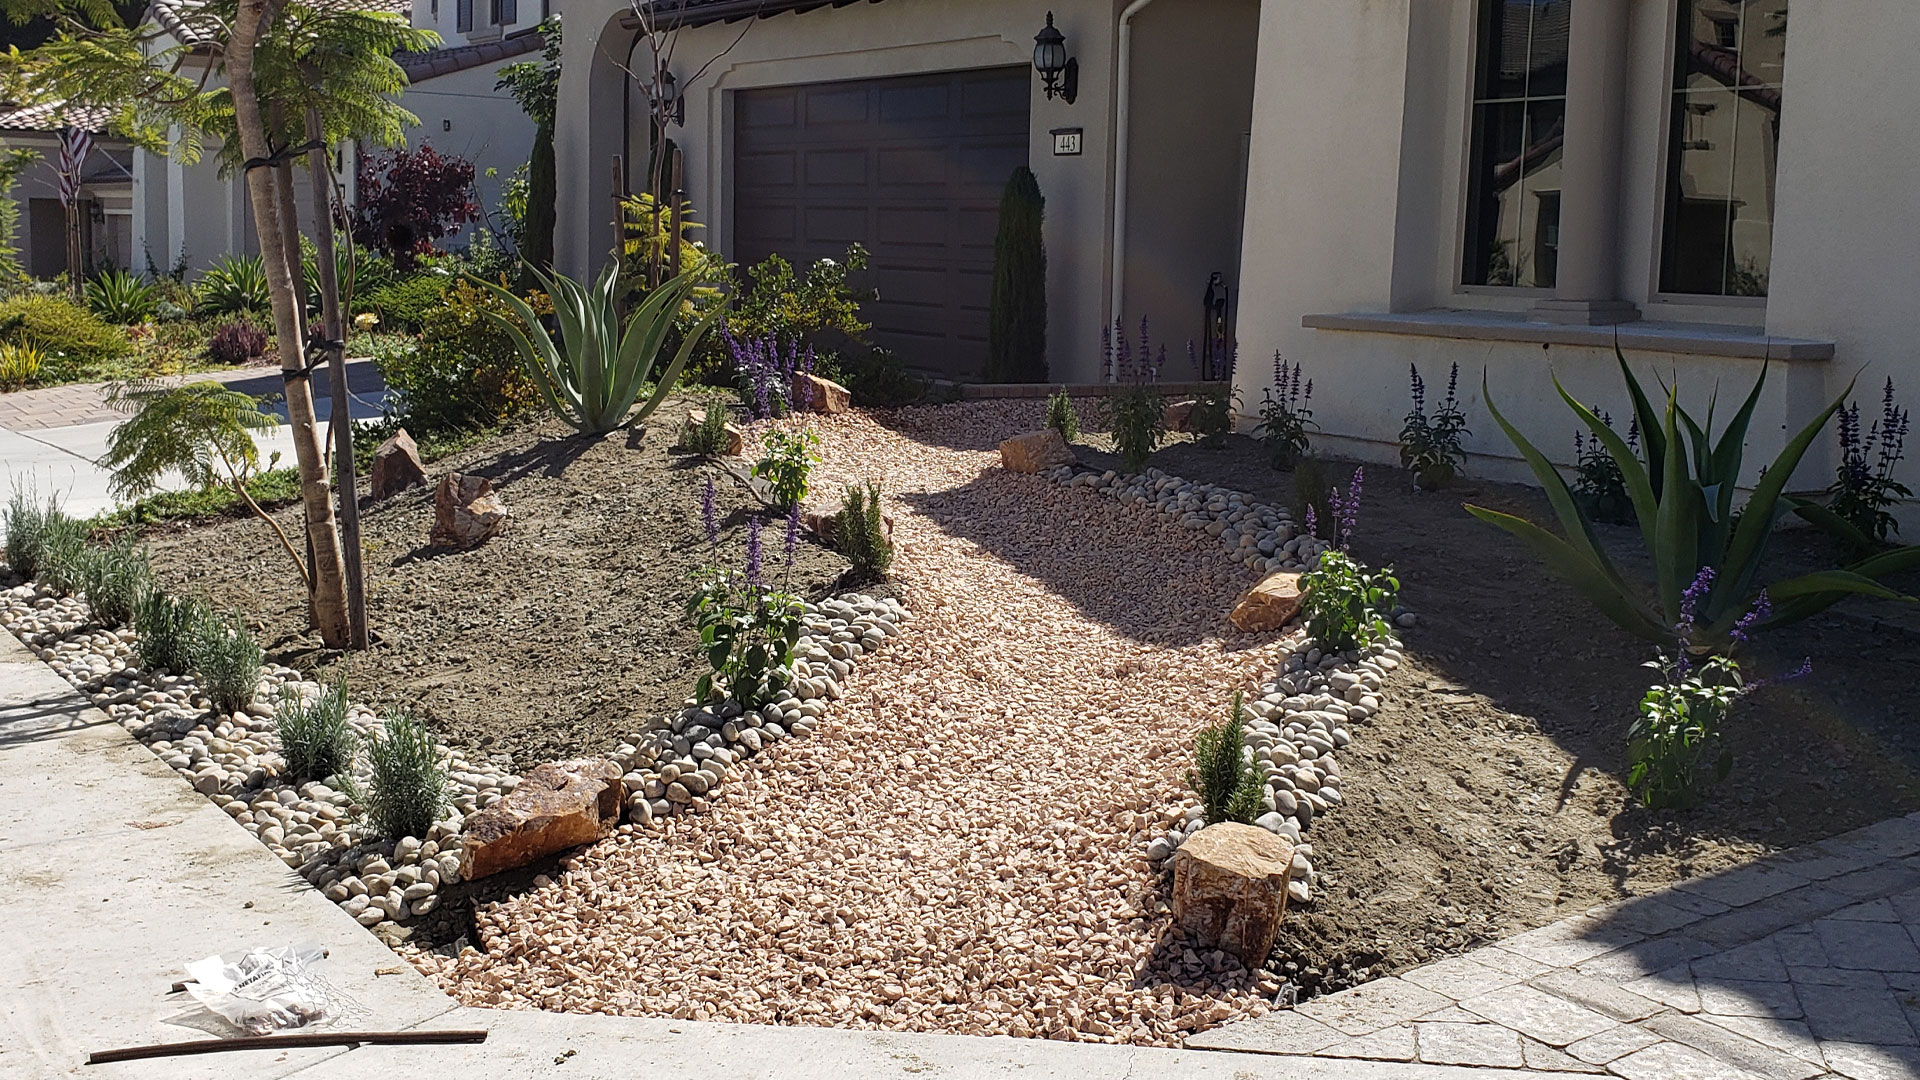 Tree care and landscaping services for residential and commercial properties in San Marcos, CA.